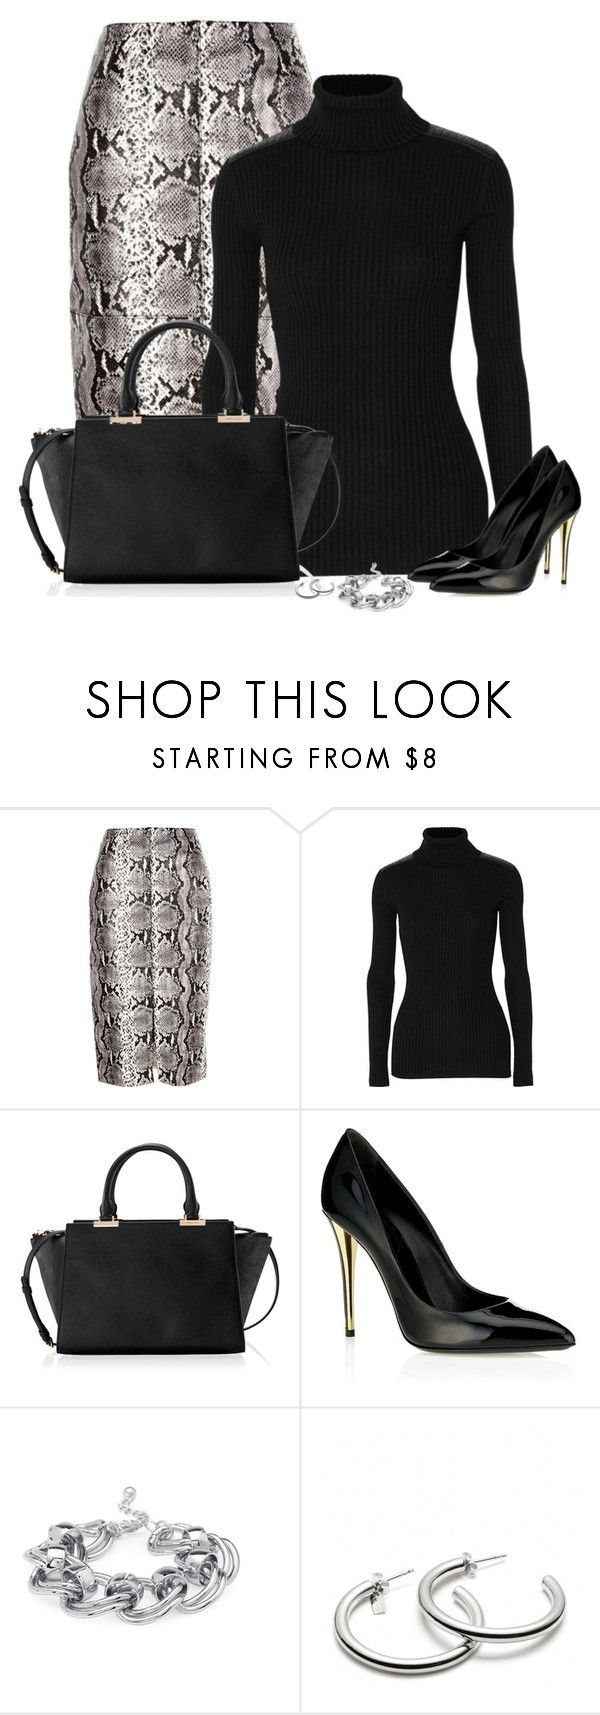 """""""Untitled #516"""" by denise-schmeltzer ❤ liked on Polyvore featuring River Island, Autumn Cashmere, Henri Bendel, Yves Saint Laurent, Forever 21 and Coach"""